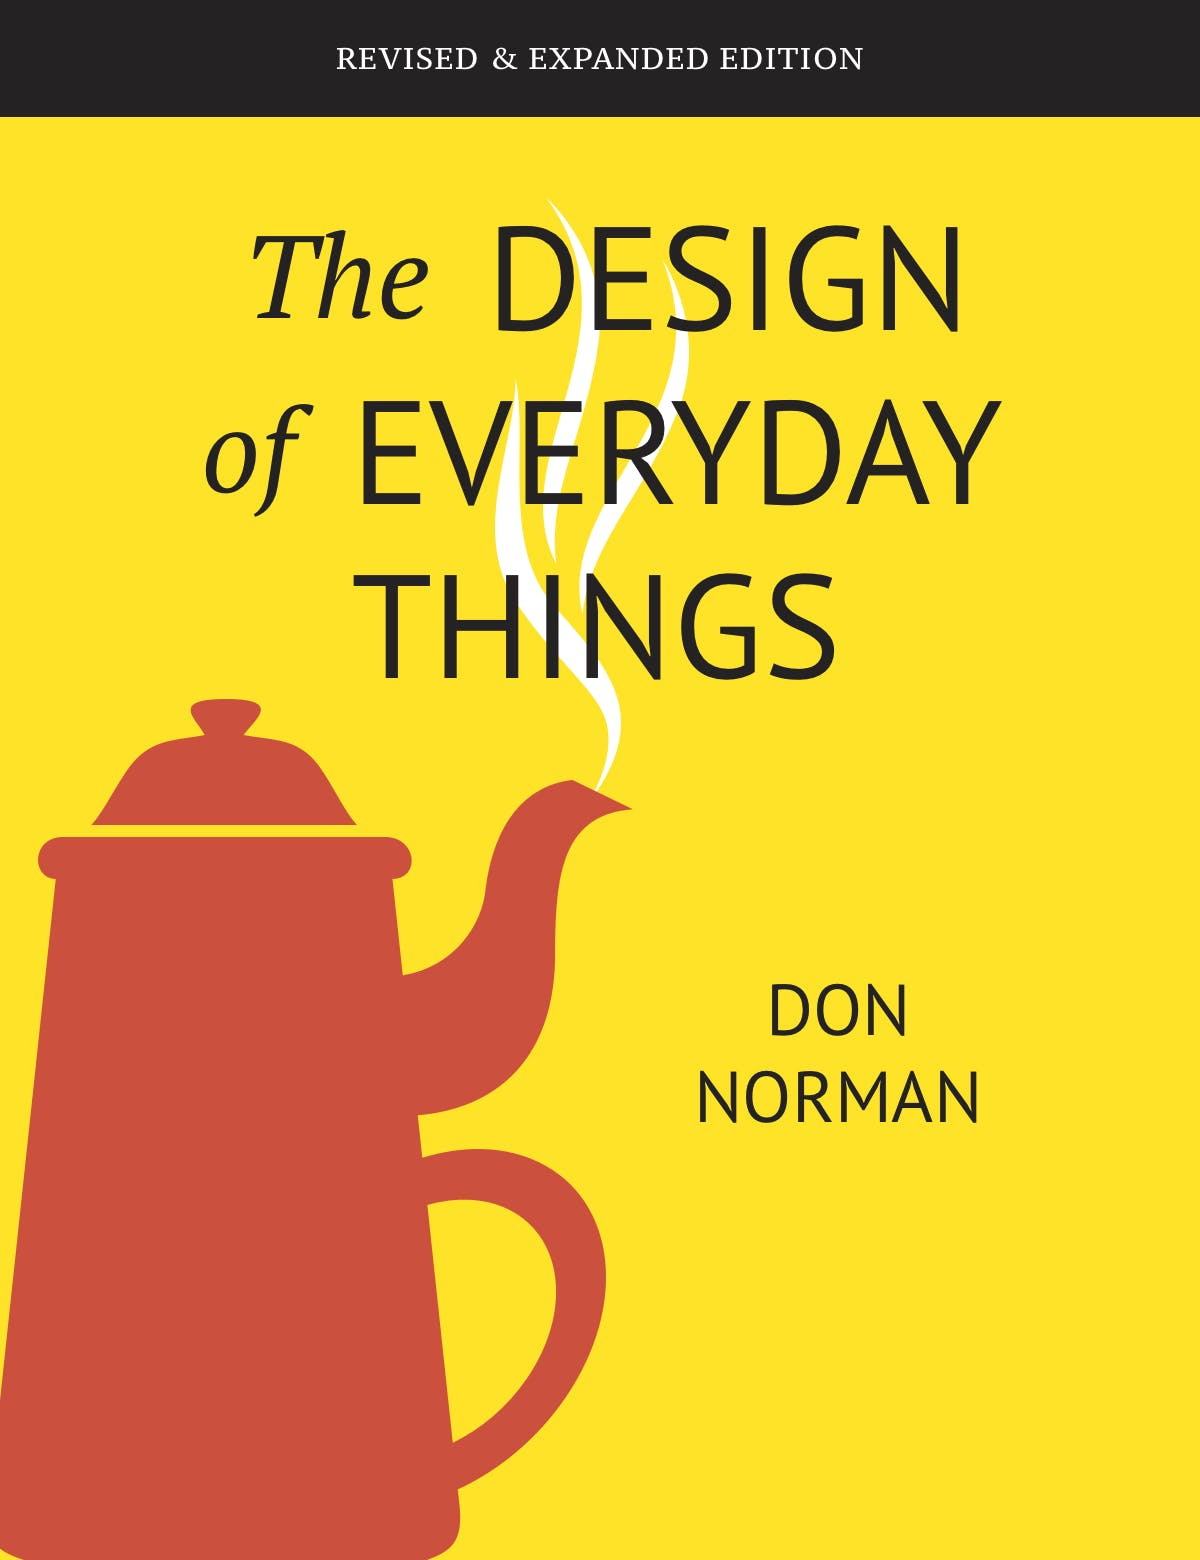 a yellow book with a red pot written by don norman